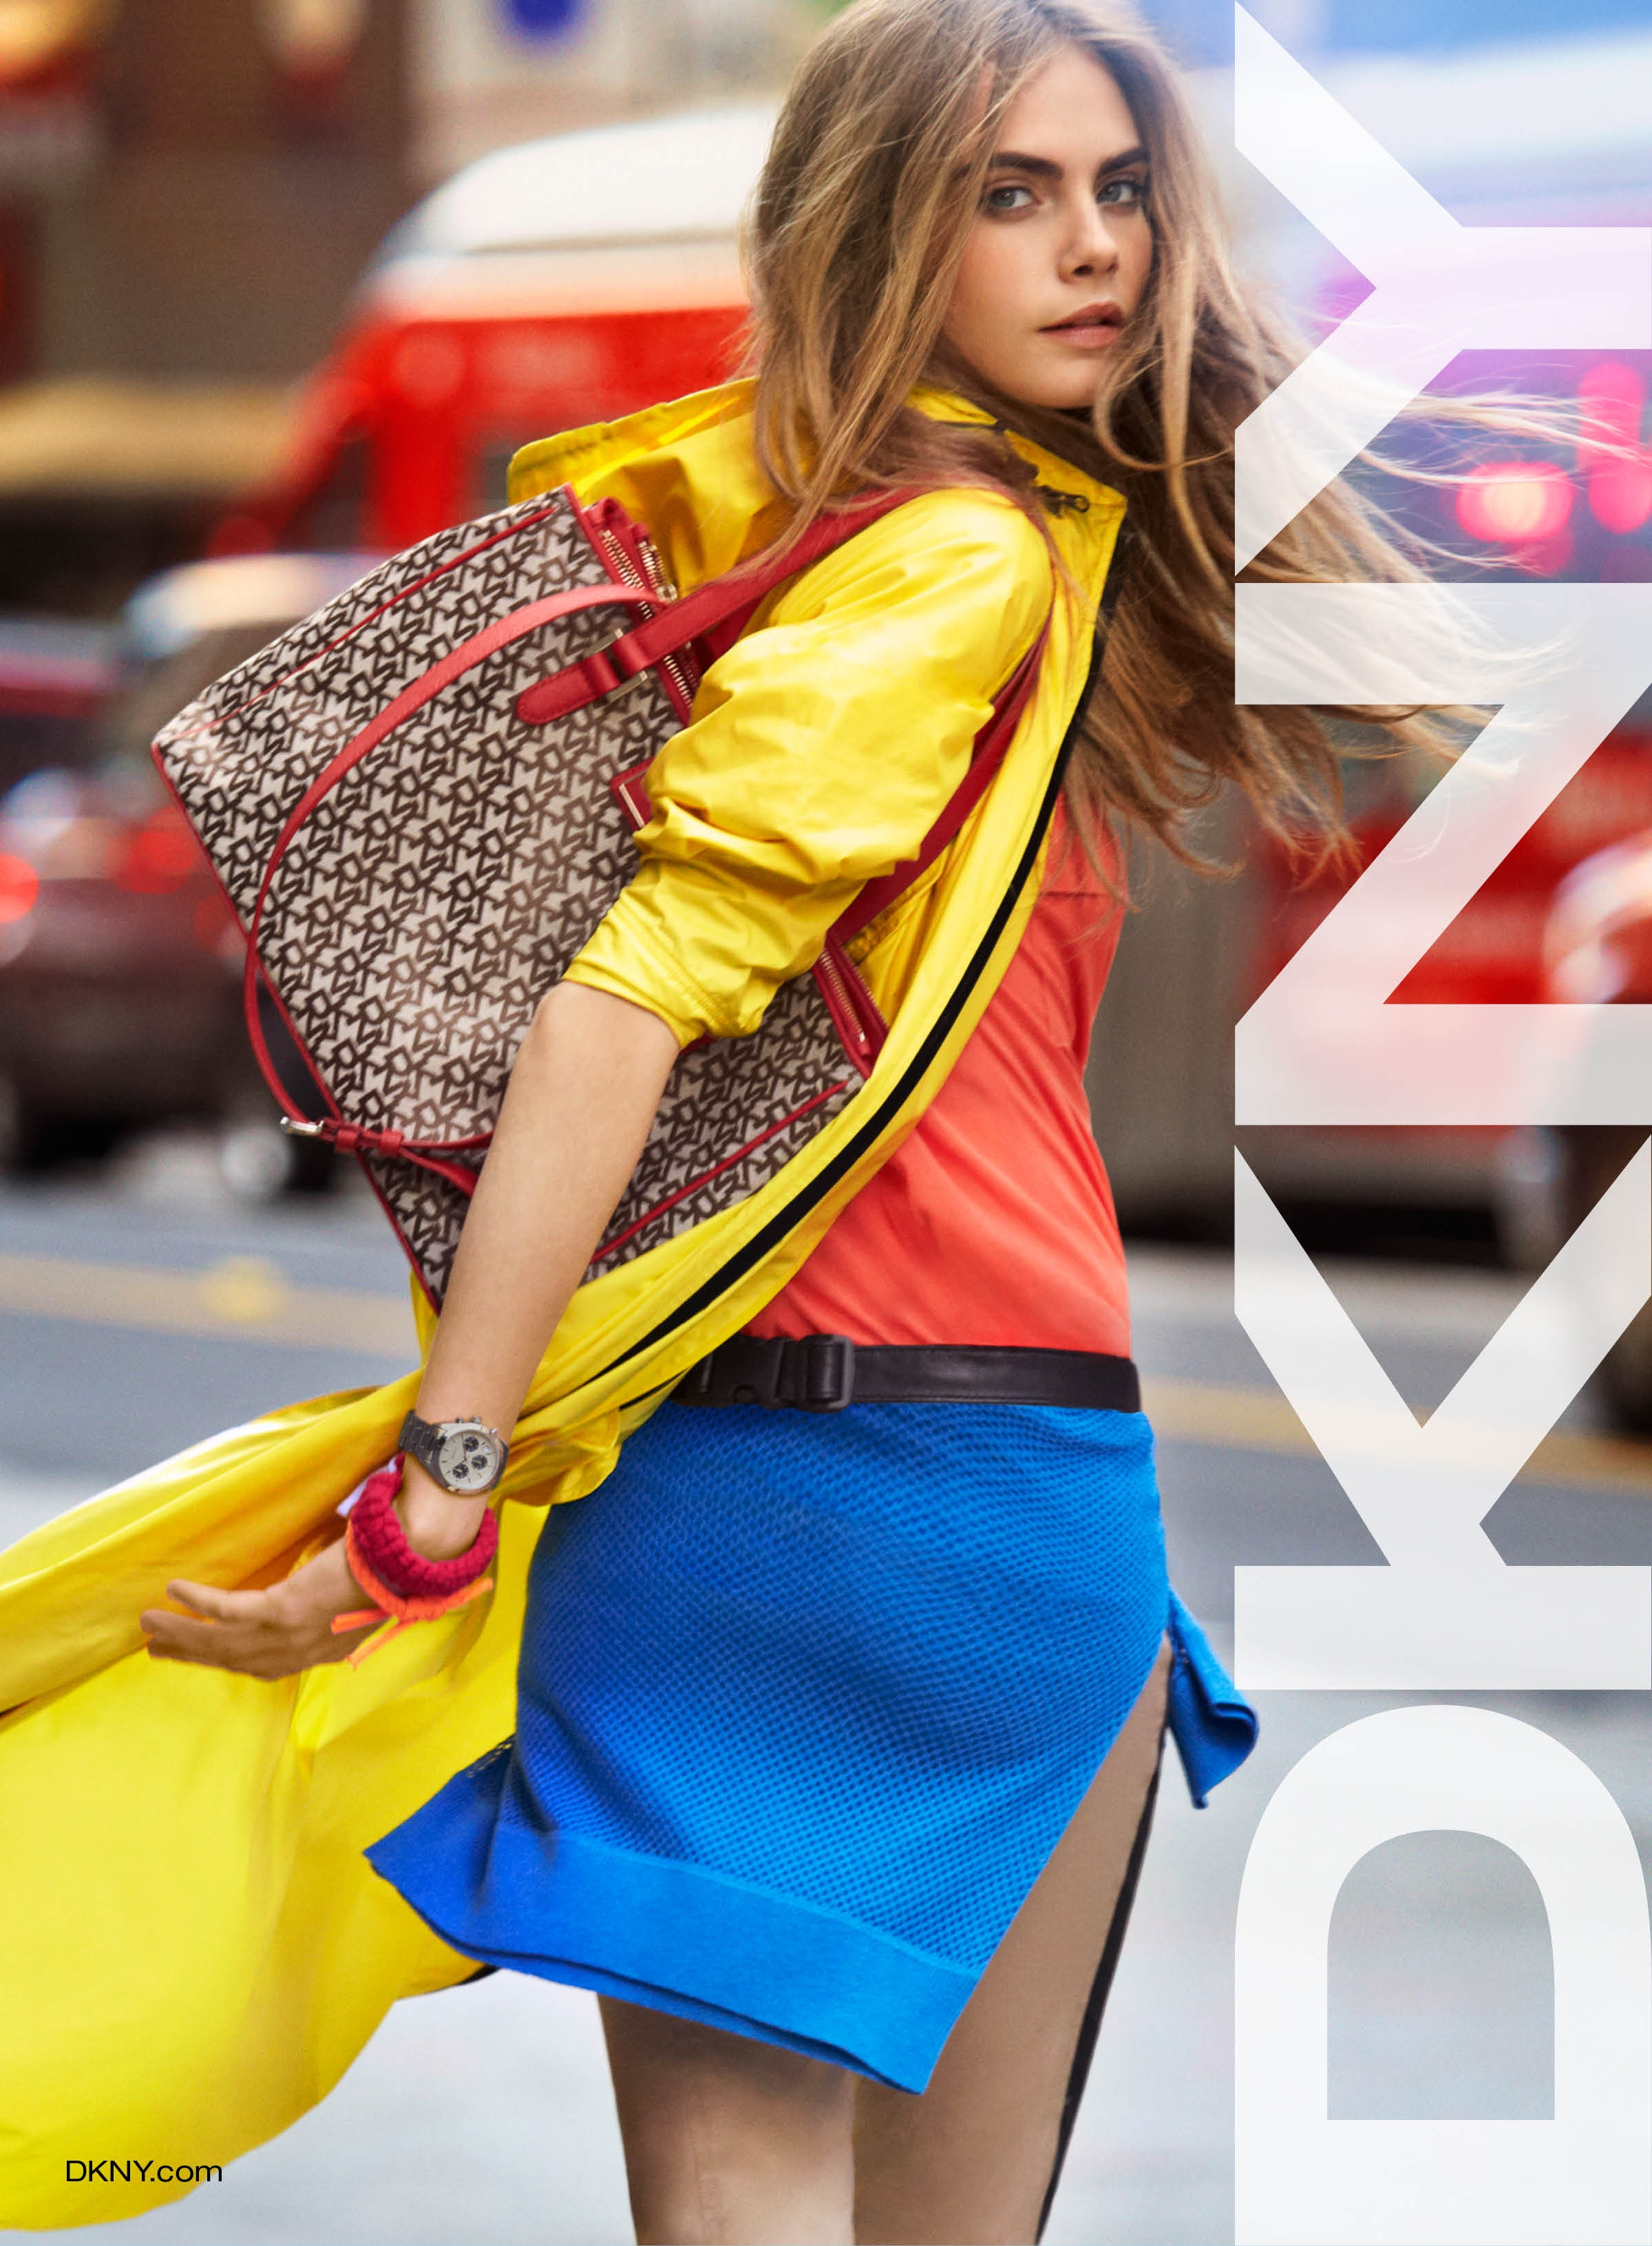 Cara-Delevingne-DKNY-Campaign-Pictures (1)